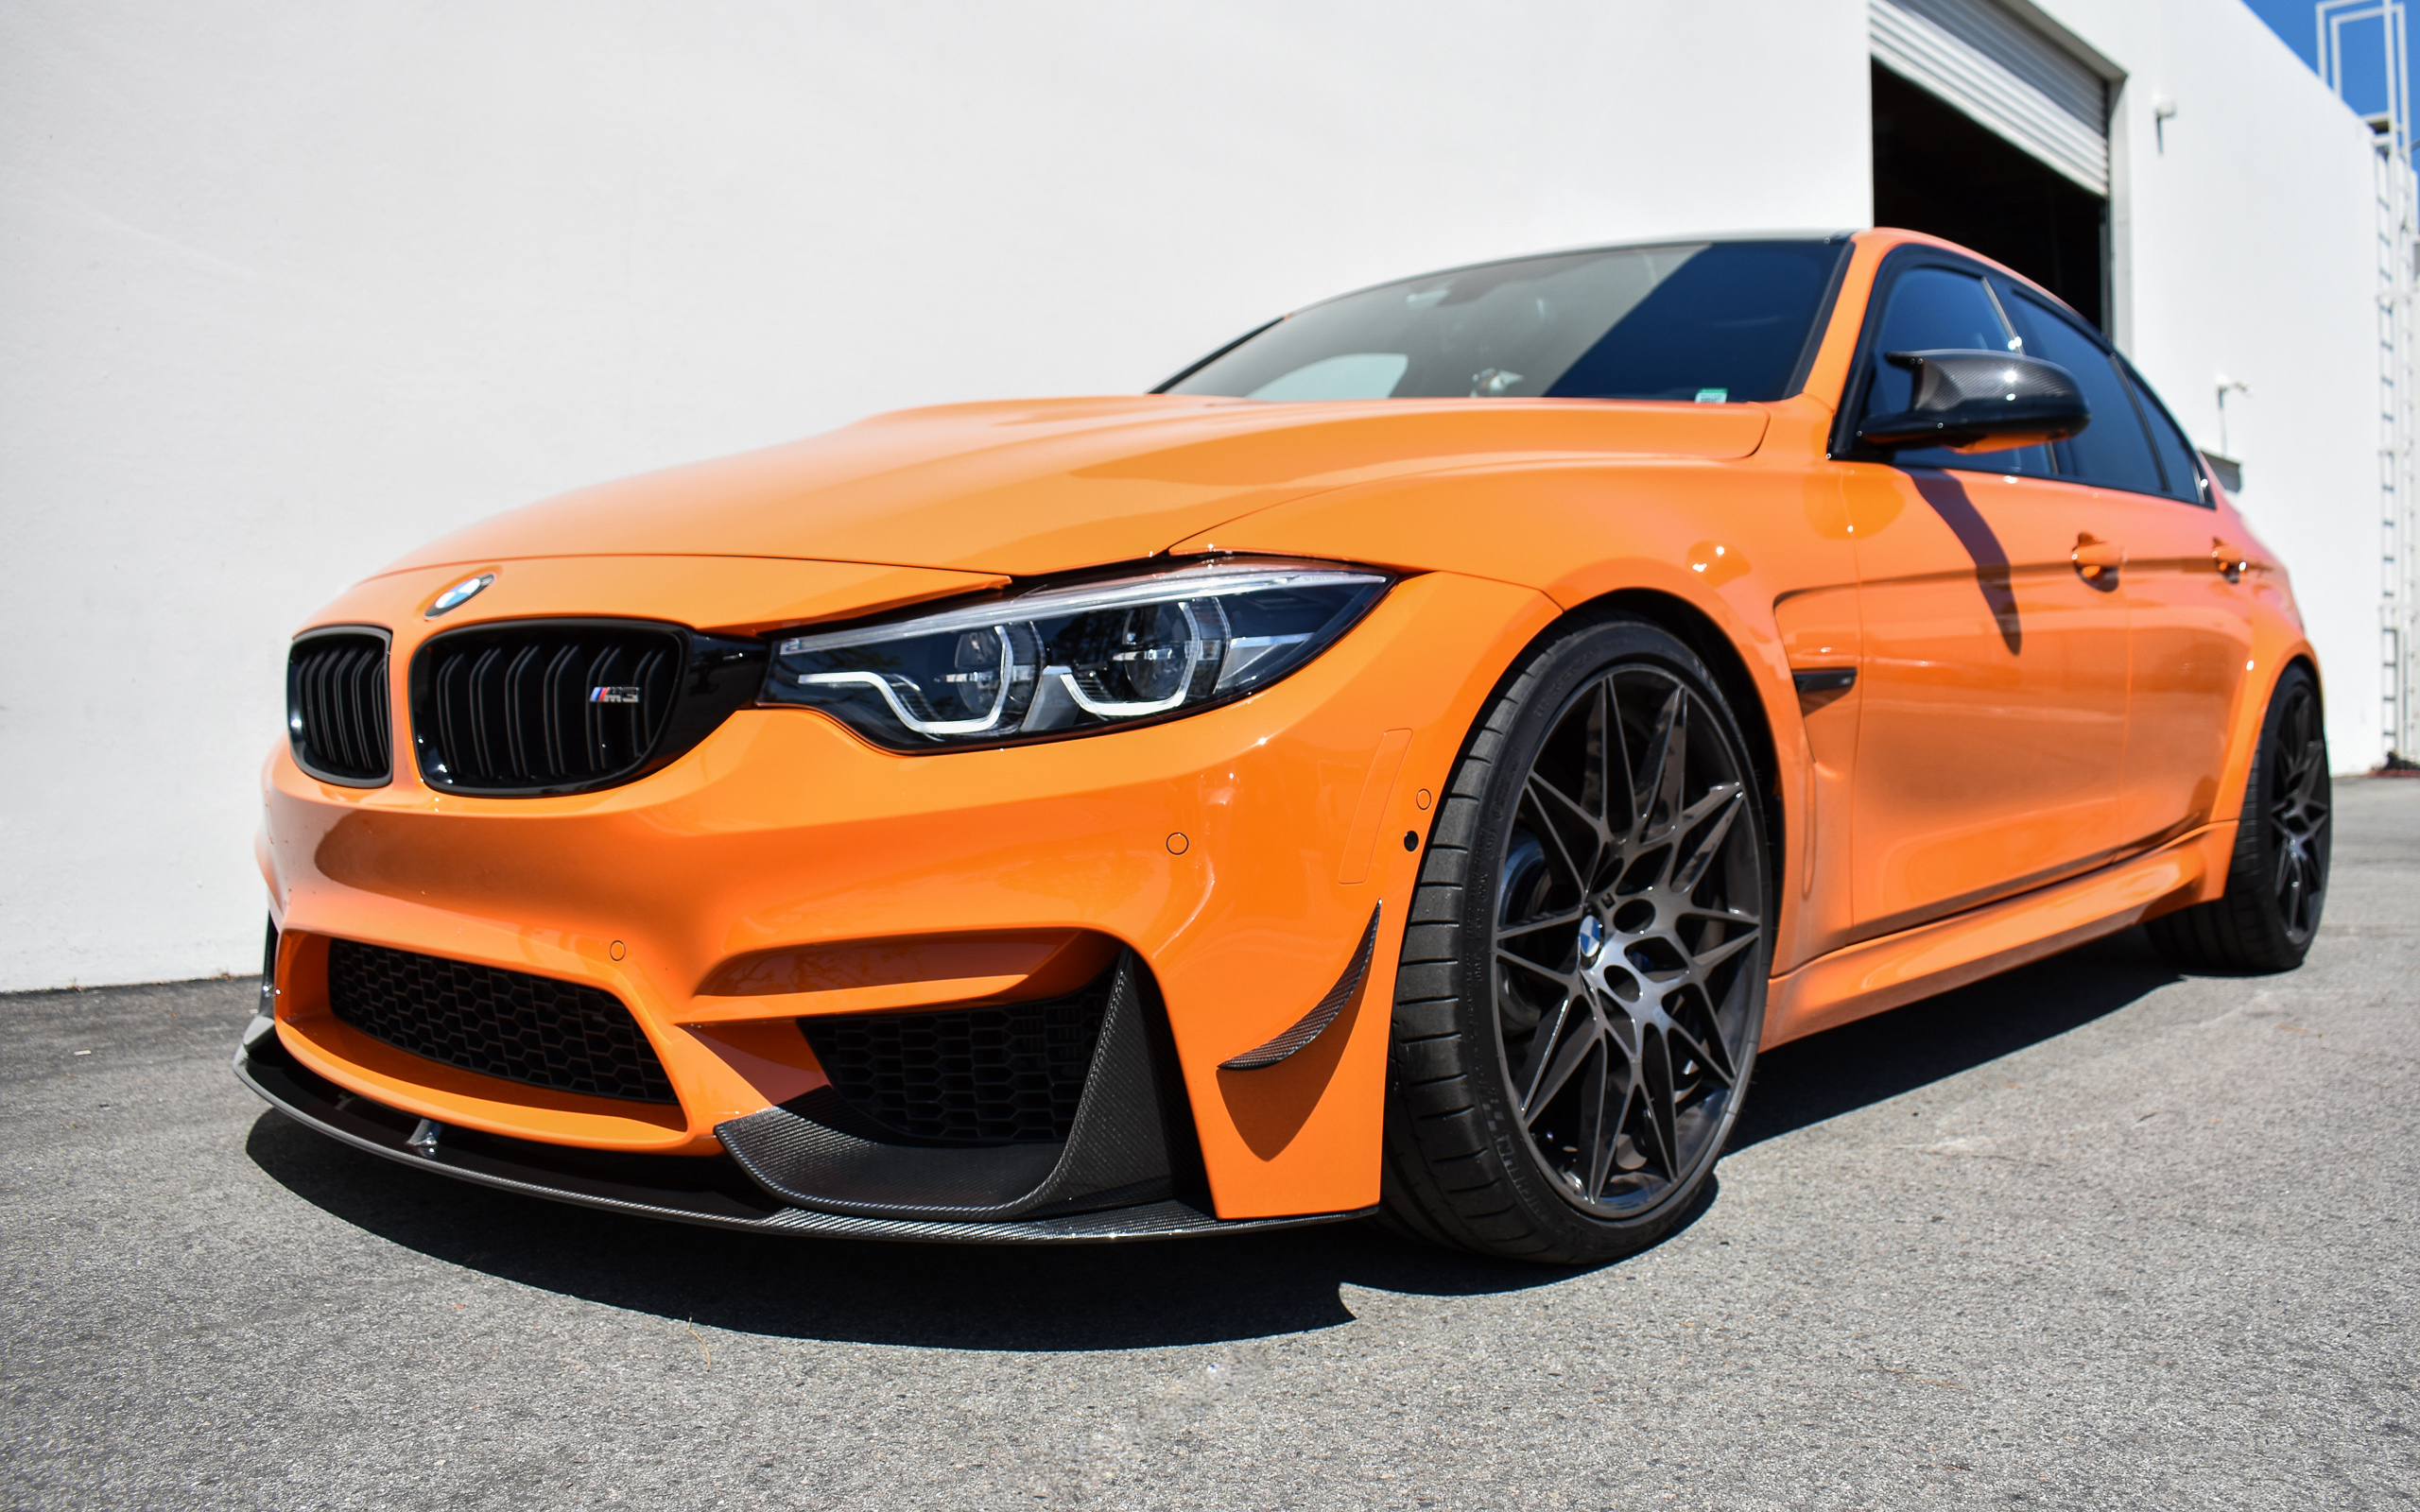 2018 Fire Orange F80 M3 ZCP, Part 2 - BMW M Performance Carbon Fiber Splitters